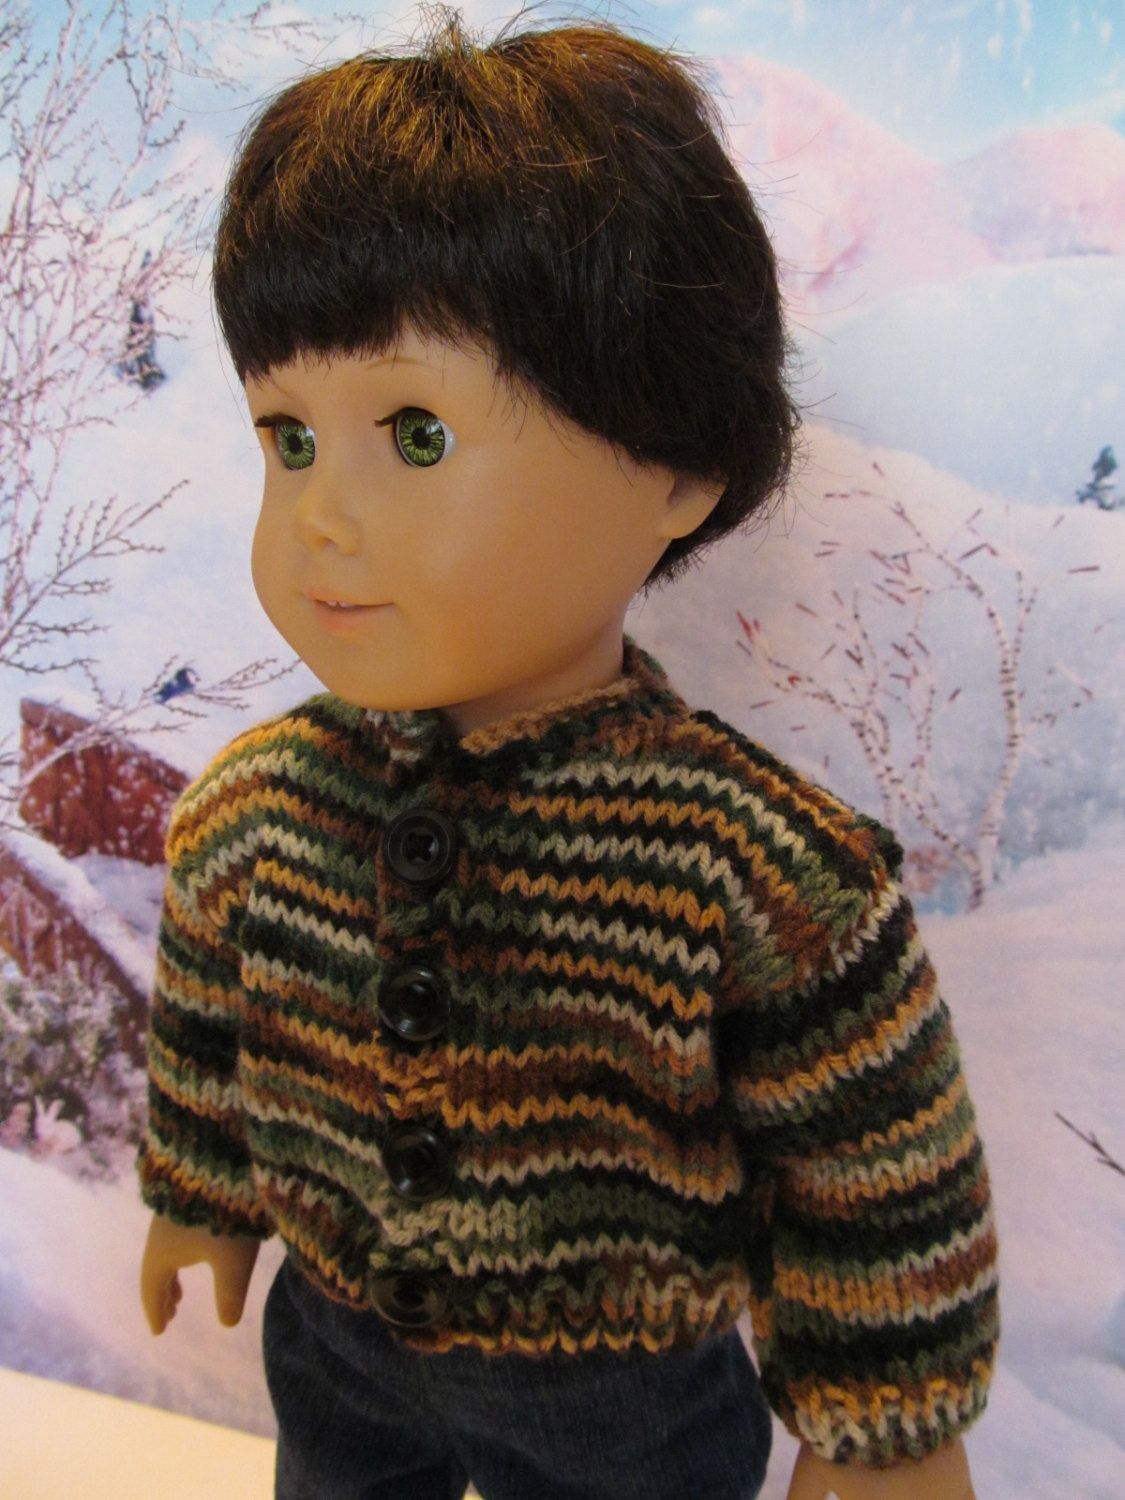 18'' Boy Doll Camo Sweater, Camo colors , Browns, Tans, Greens and Black Yarn. Winterwear, Outdoorwear, Playwear, Funwear,Everydaywear by SewManyThingsbyNancy on Etsy #boydollsincamo 18'' Boy Doll Camo Sweater, Camo colors , Browns, Tans, Greens and Black Yarn. Winterwear, Outdoorwear, Playwear, Funwear,Everydaywear by SewManyThingsbyNancy on Etsy #boydollsincamo 18'' Boy Doll Camo Sweater, Camo colors , Browns, Tans, Greens and Black Yarn. Winterwear, Outdoorwear, Playwear, Funwear,Everydaywear #boydollsincamo